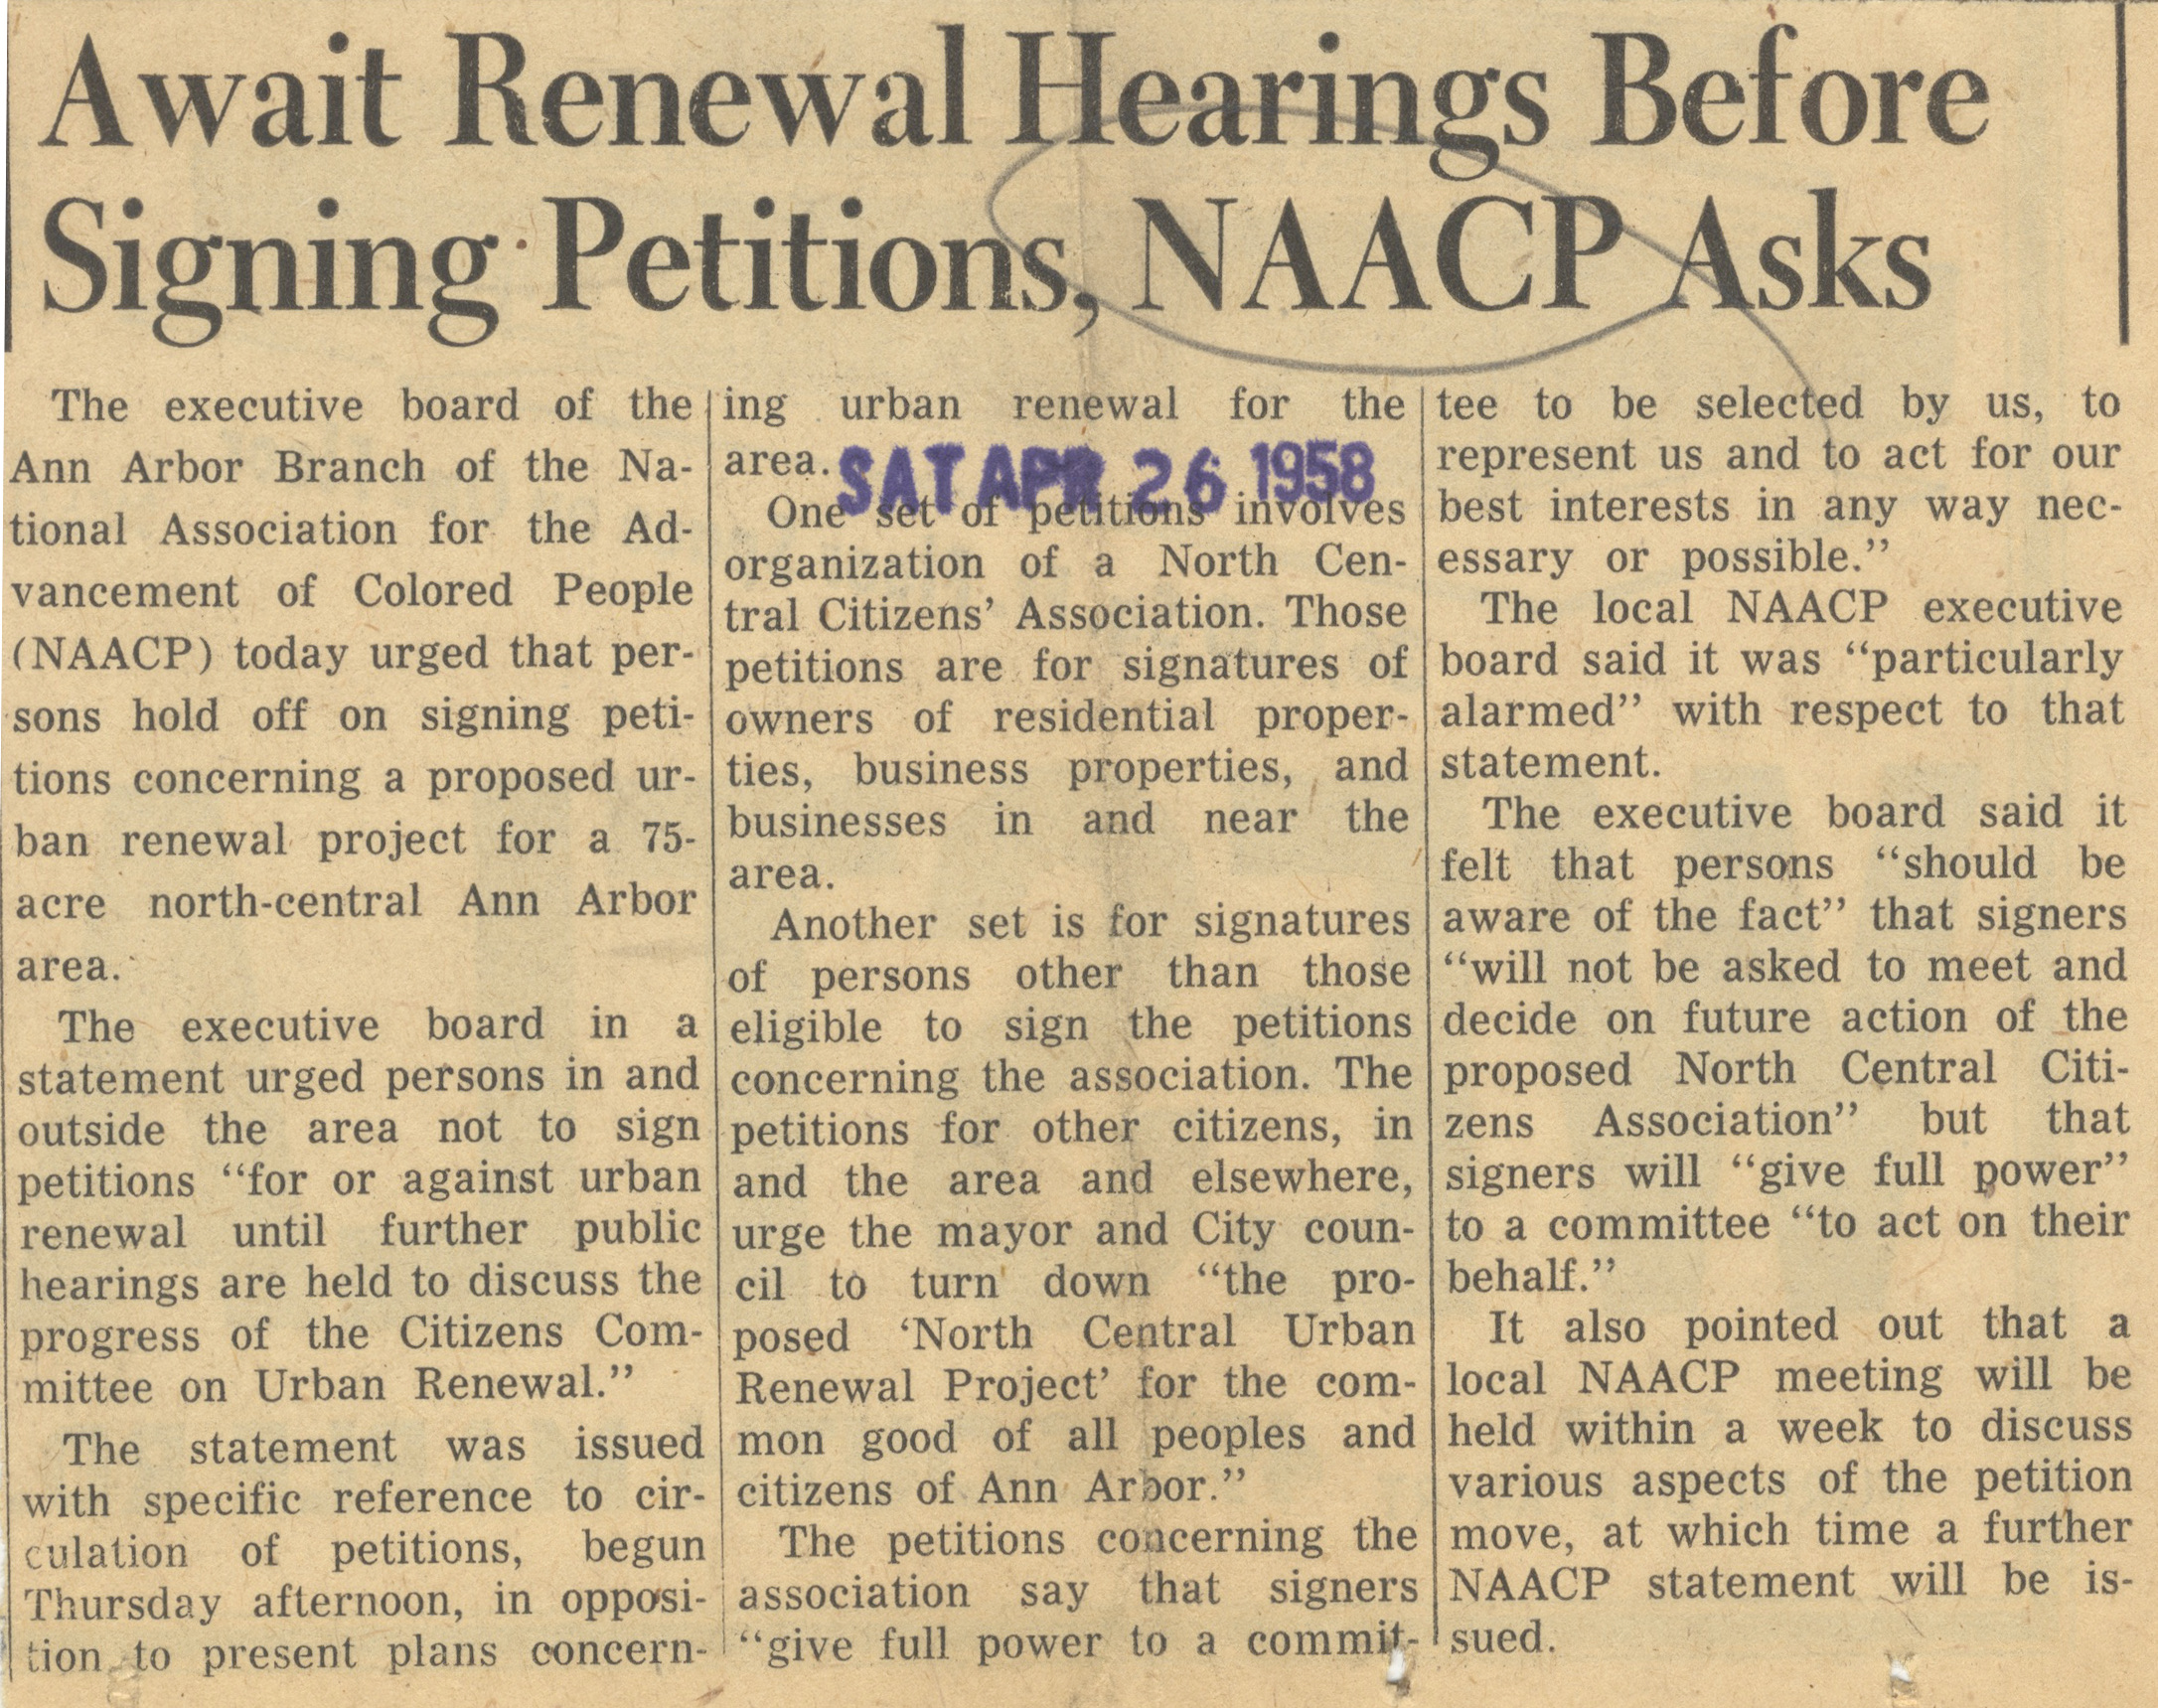 Await Renewal Hearings Before Signing Petitions, NAACP Asks image